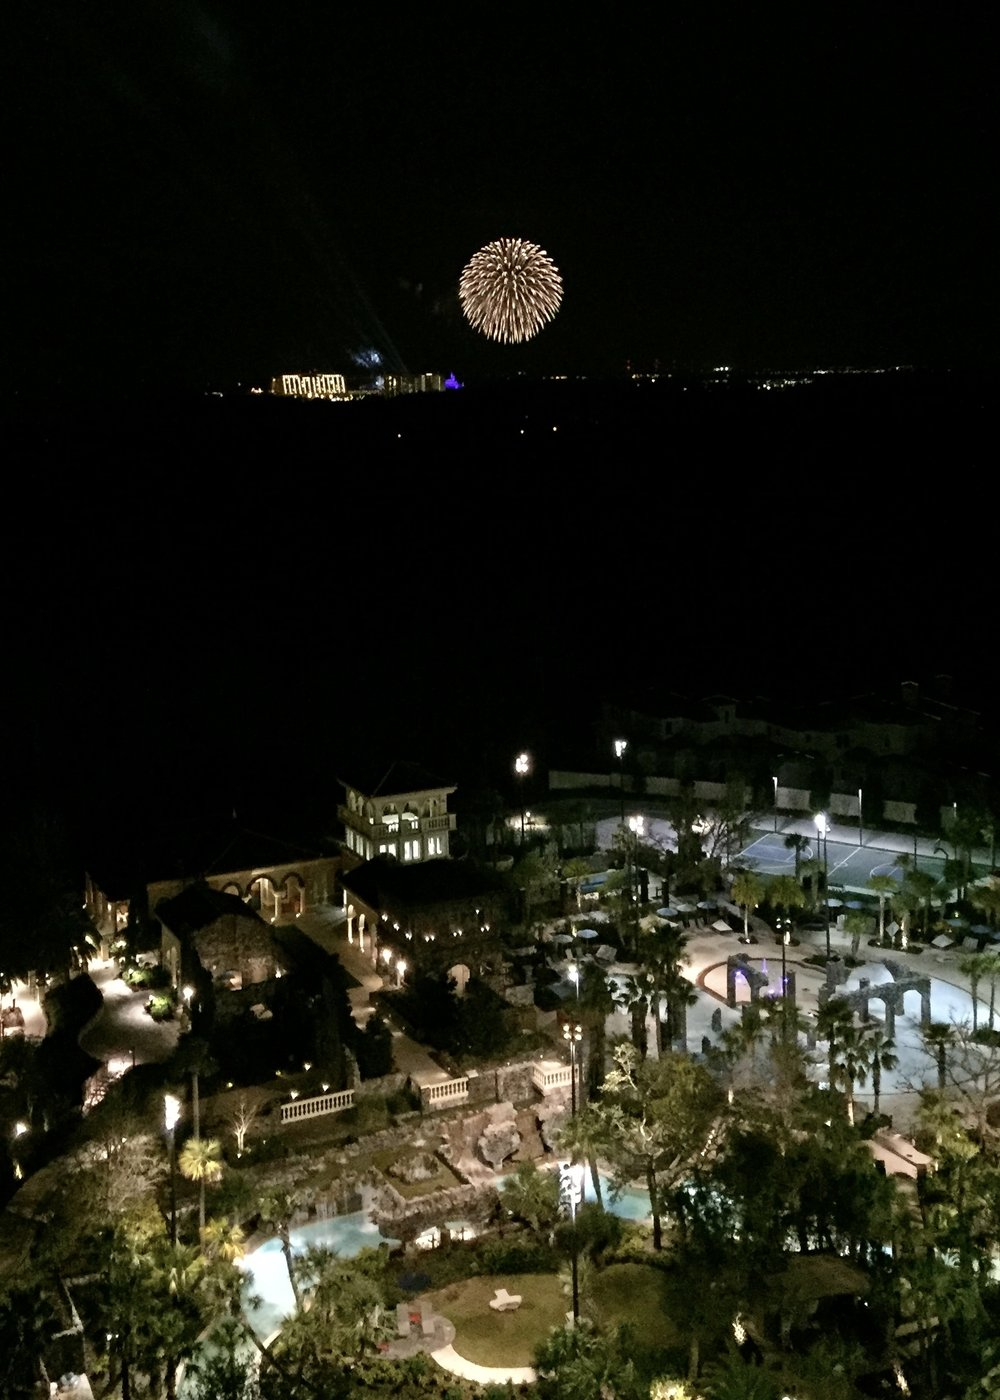 You can see the nightly Magic Kingdom fireworks display from the Park View Rooms and Suites, and the amazing Capa restaurant.